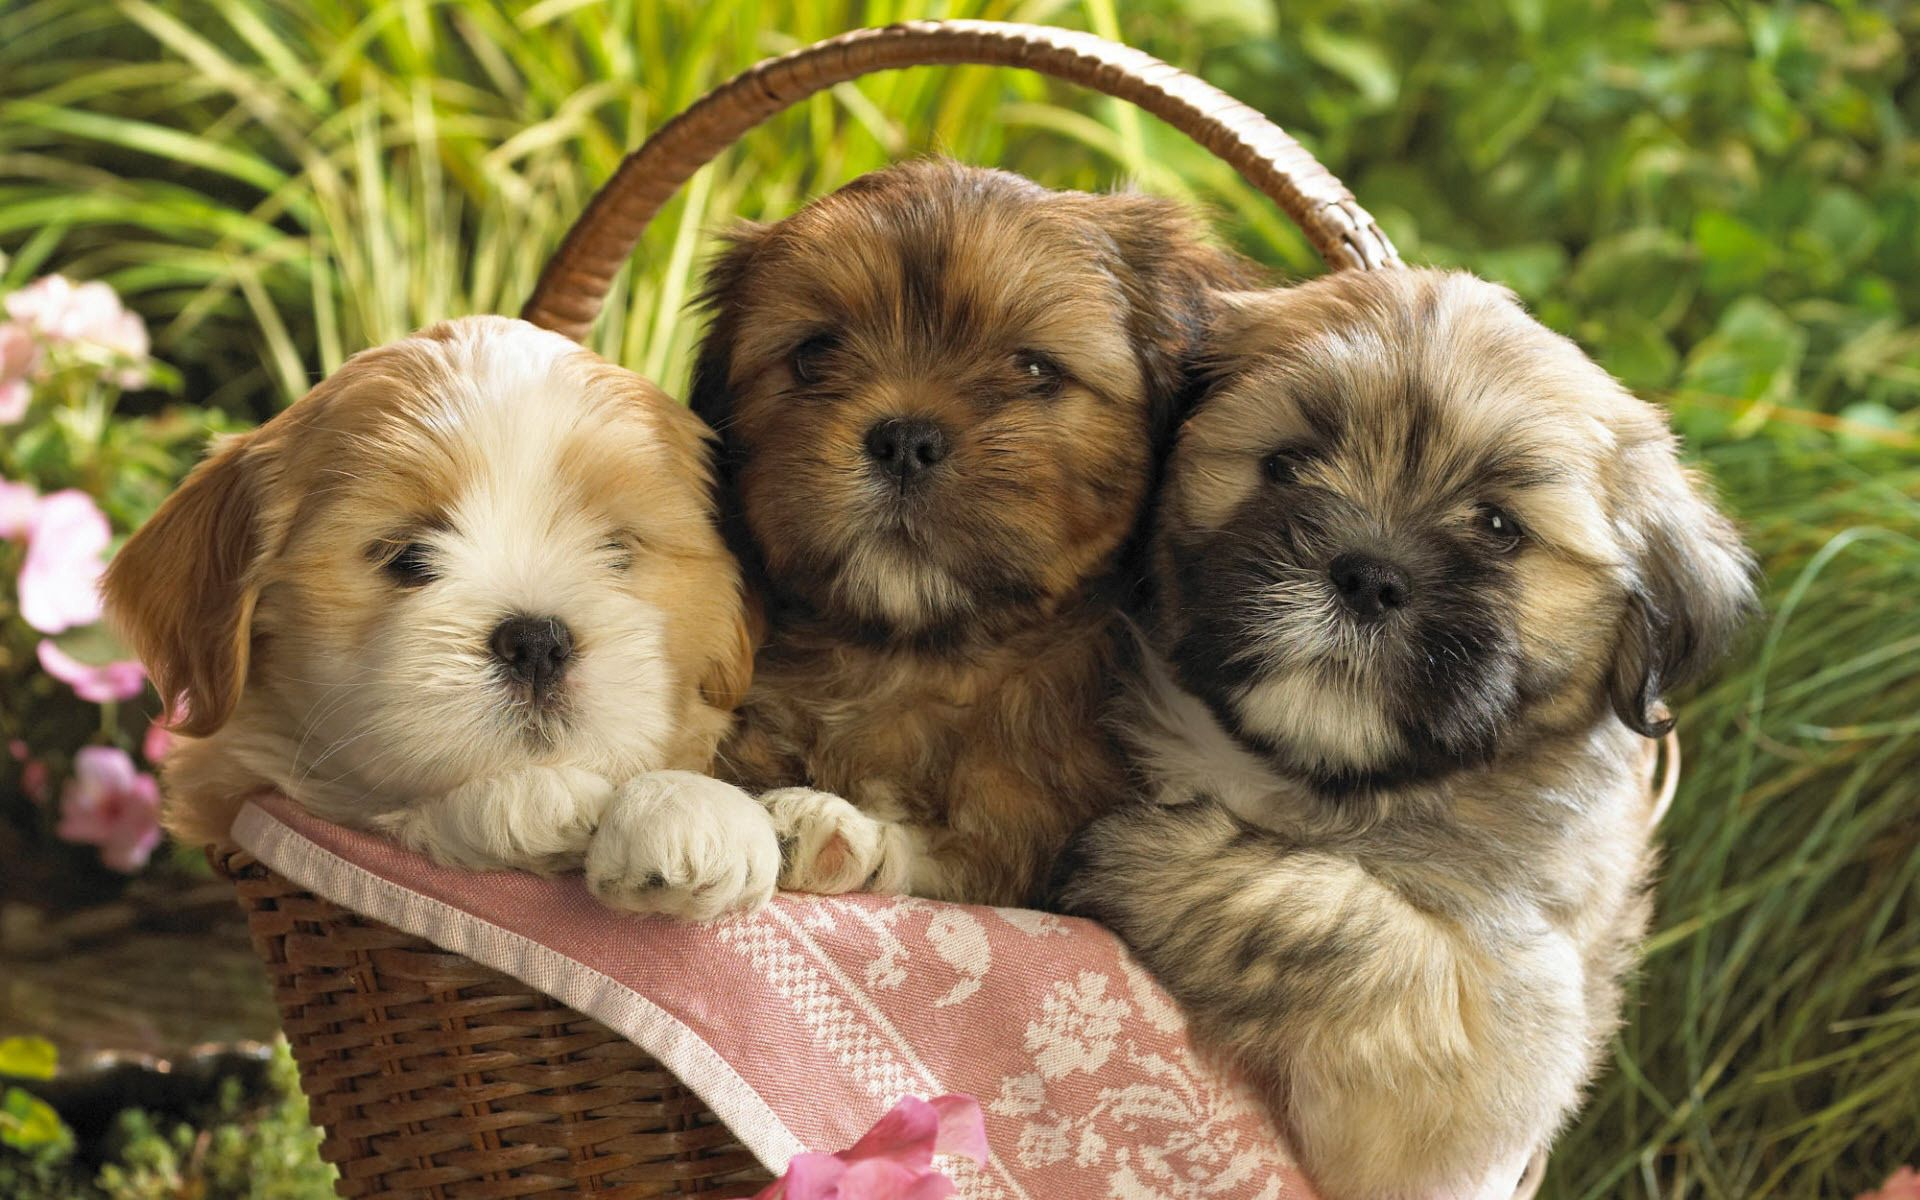 138526 download wallpaper Animals, Grass, Sit, Basket, Three, Puppies screensavers and pictures for free